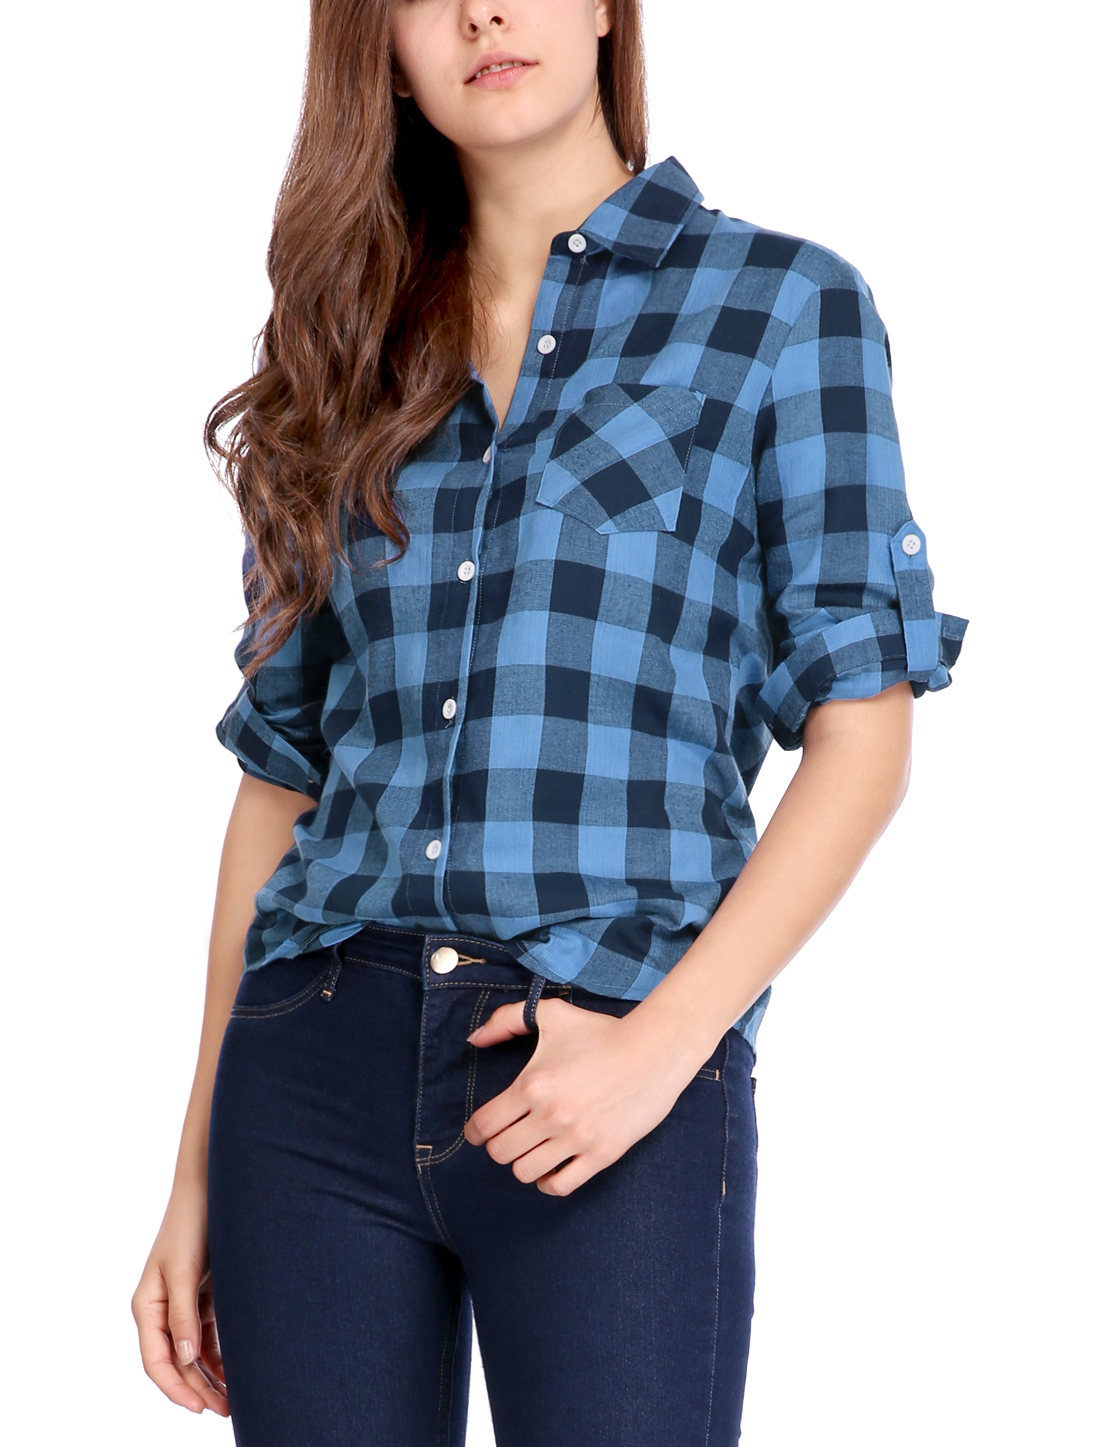 Allegra K Ladies Roll Up Sleeves Button Placket Plaid Shirt Black Blue S